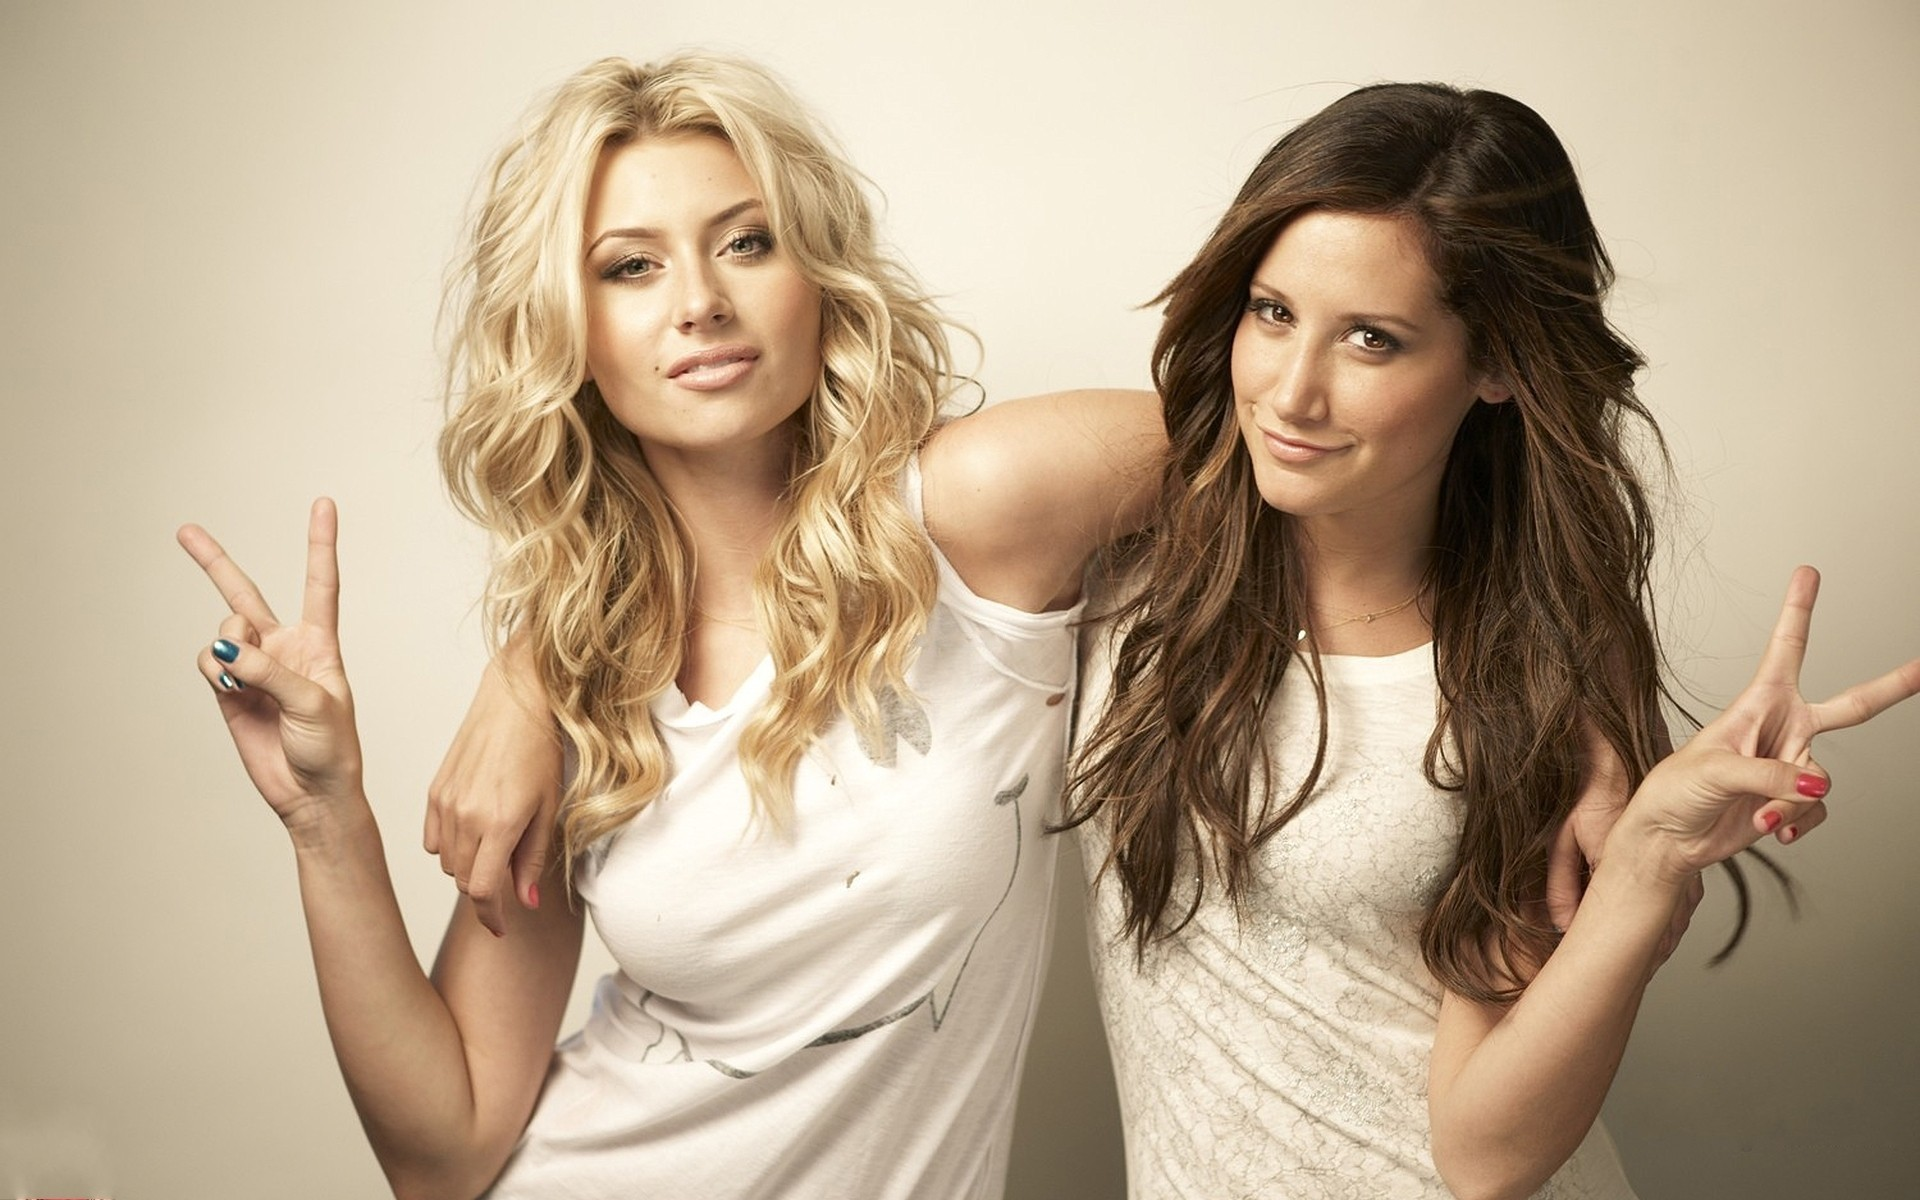 People 1920x1200 Alyson Michalka Ashley Tisdale two women white clothing celebrity long hair looking at viewer hand gesture simple background white background peace sign